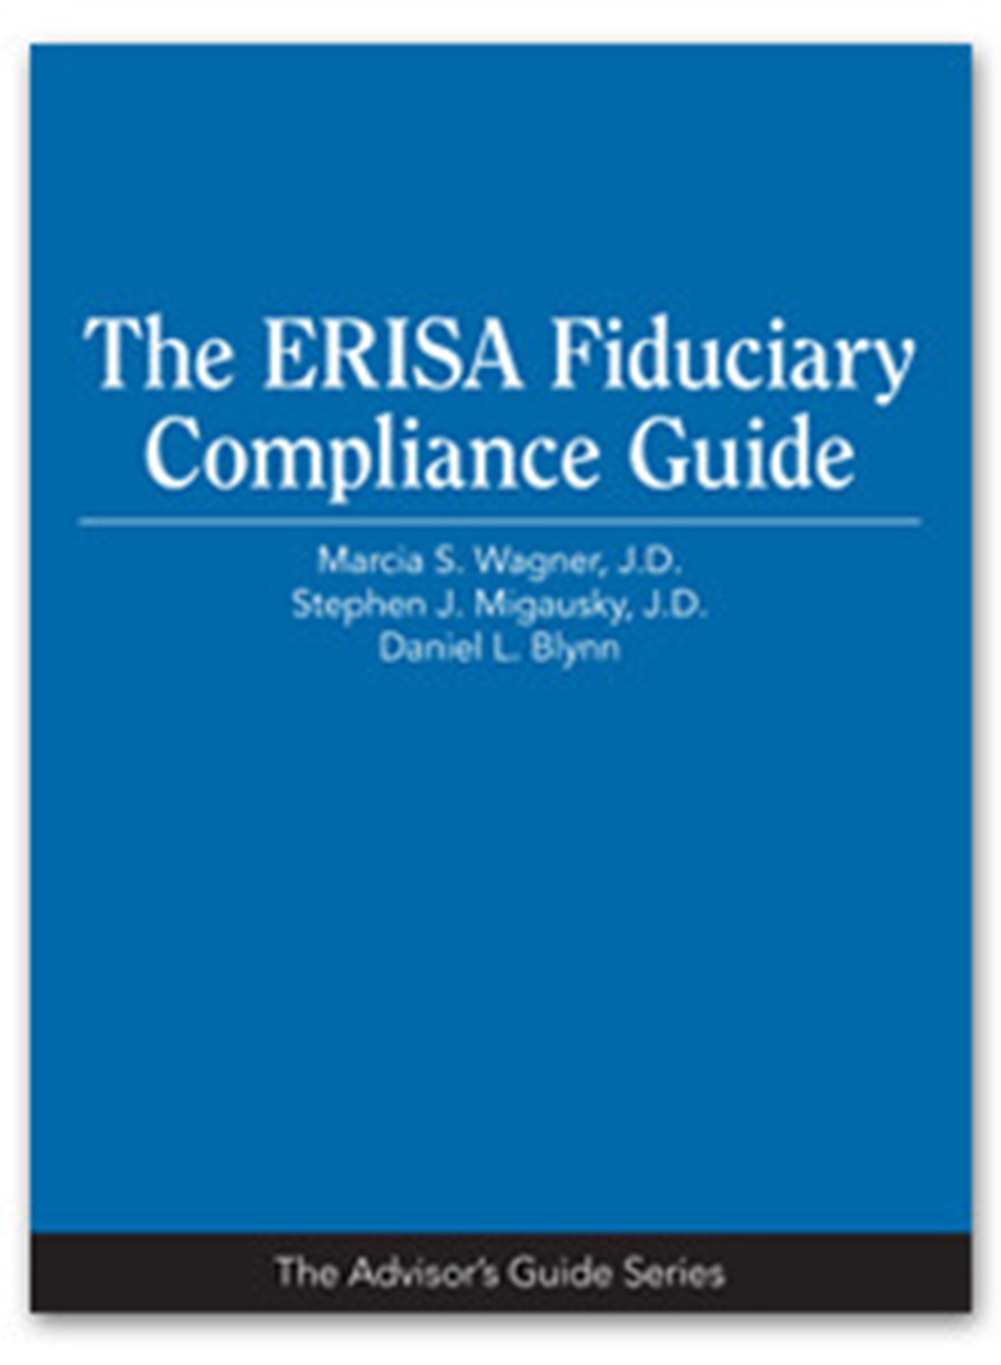 ERISA Fiduciary Compliance Guide